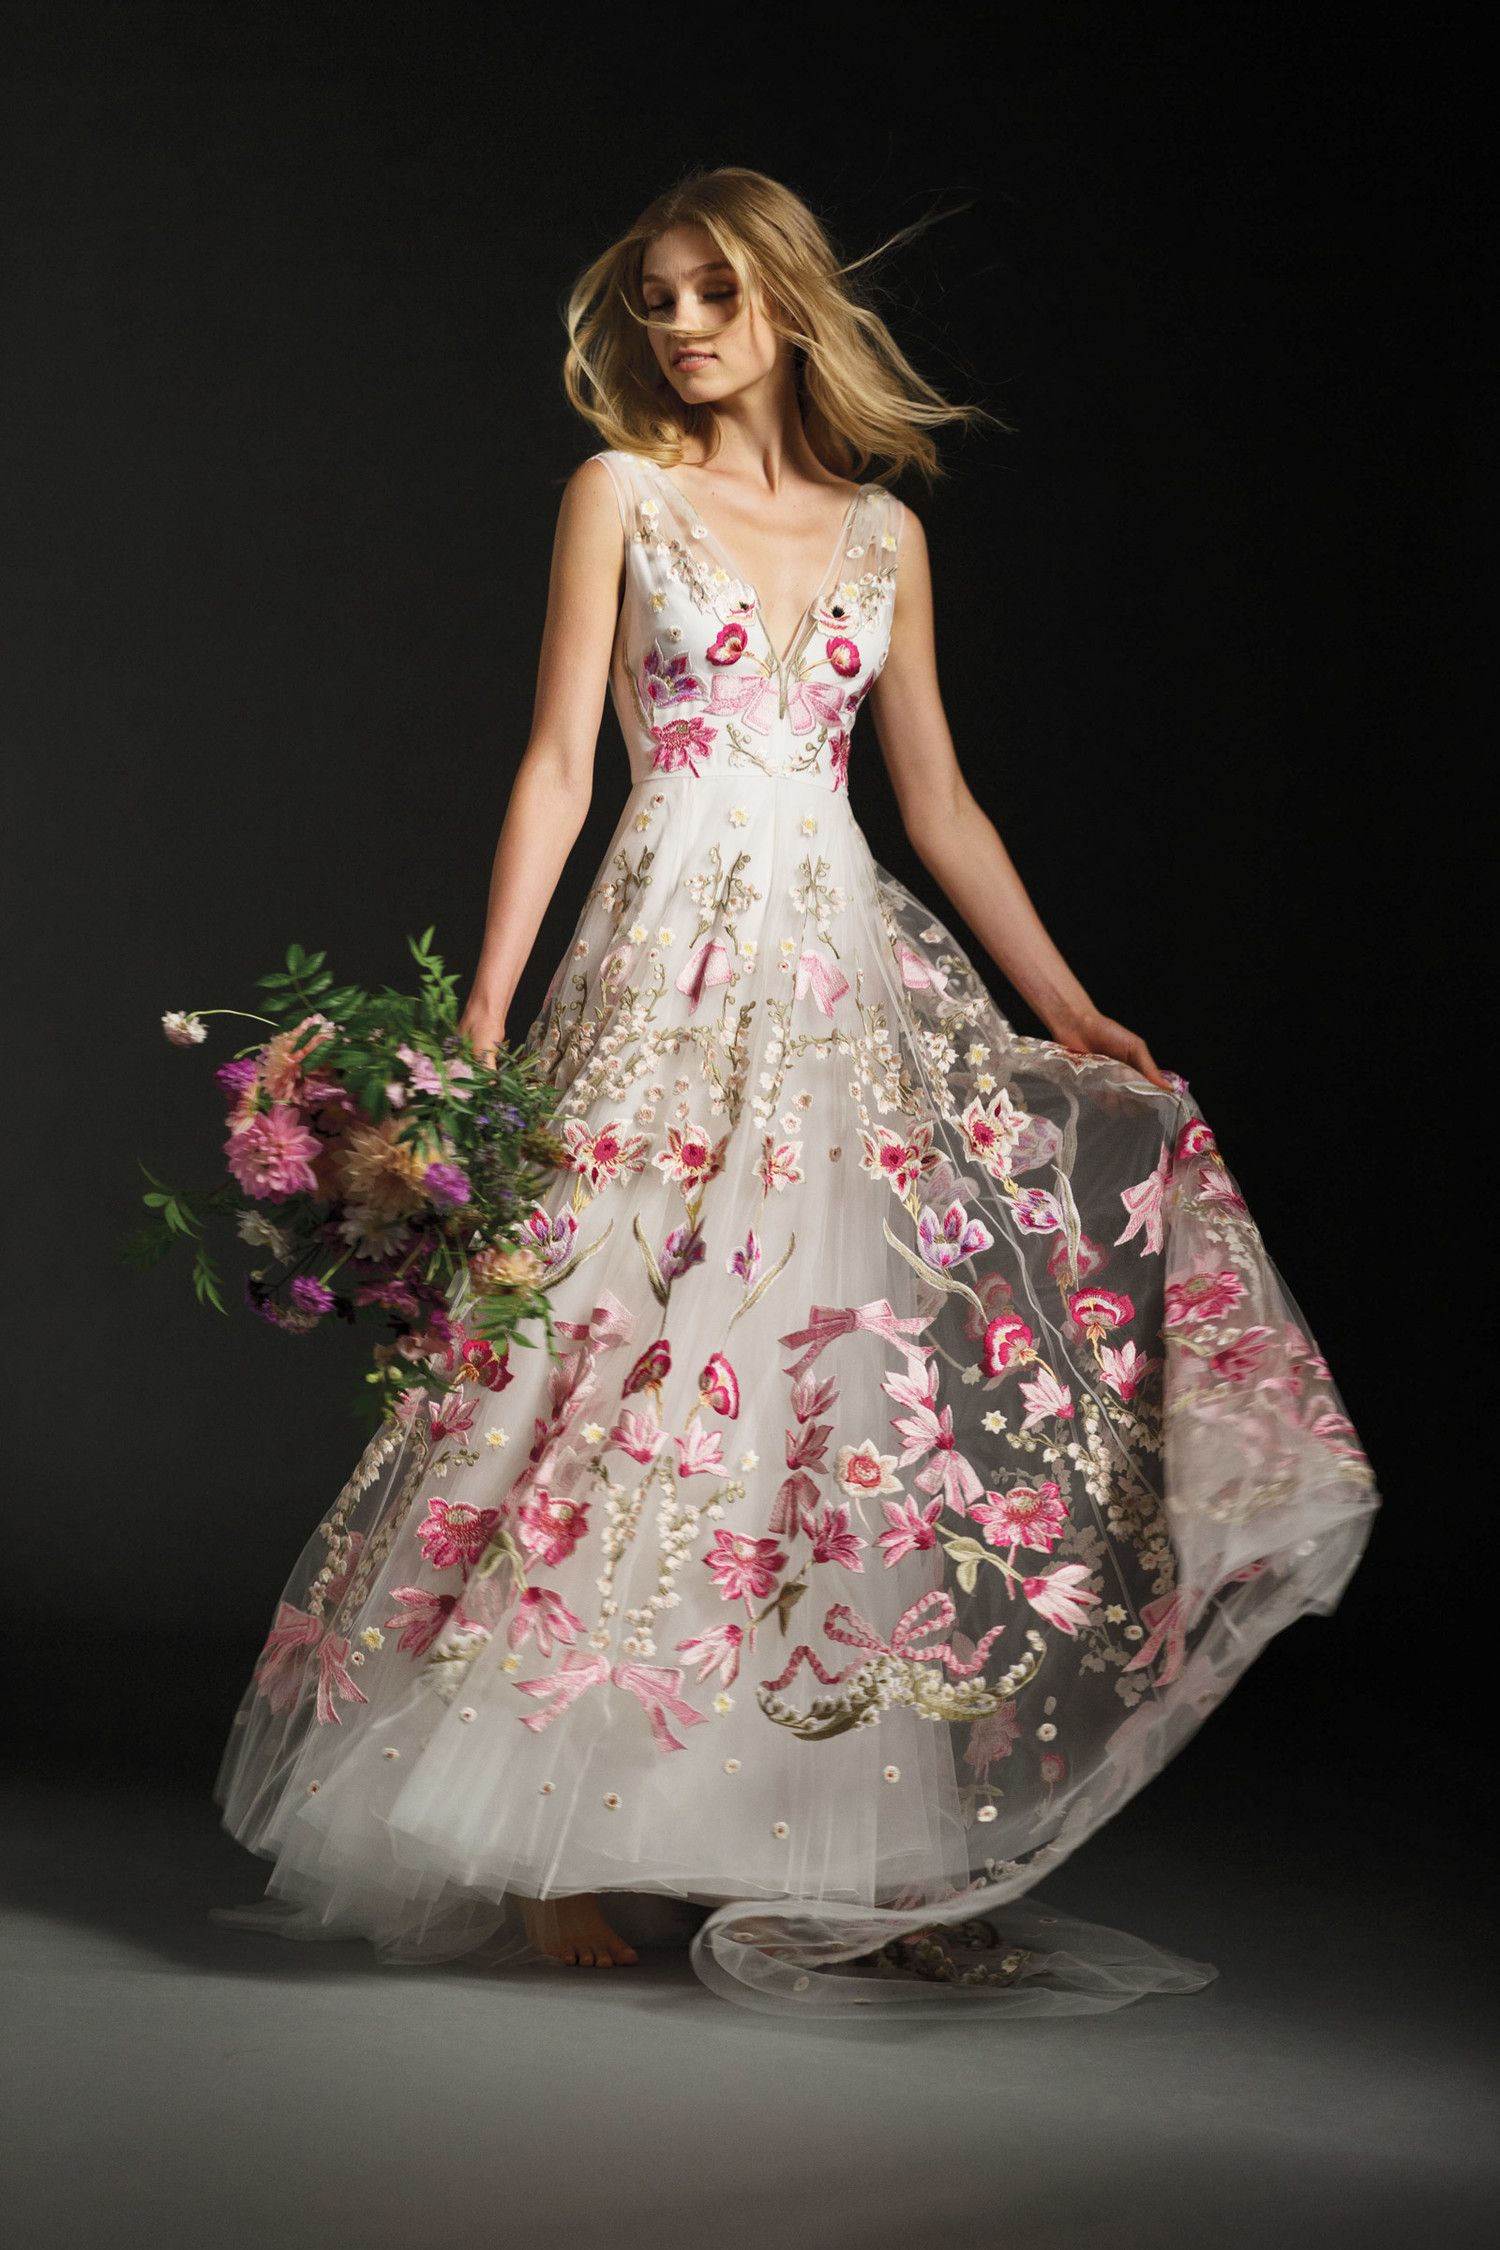 Floral print wedding dresses  Colorful Wedding Dresses That Make a Statement Down the Aisle